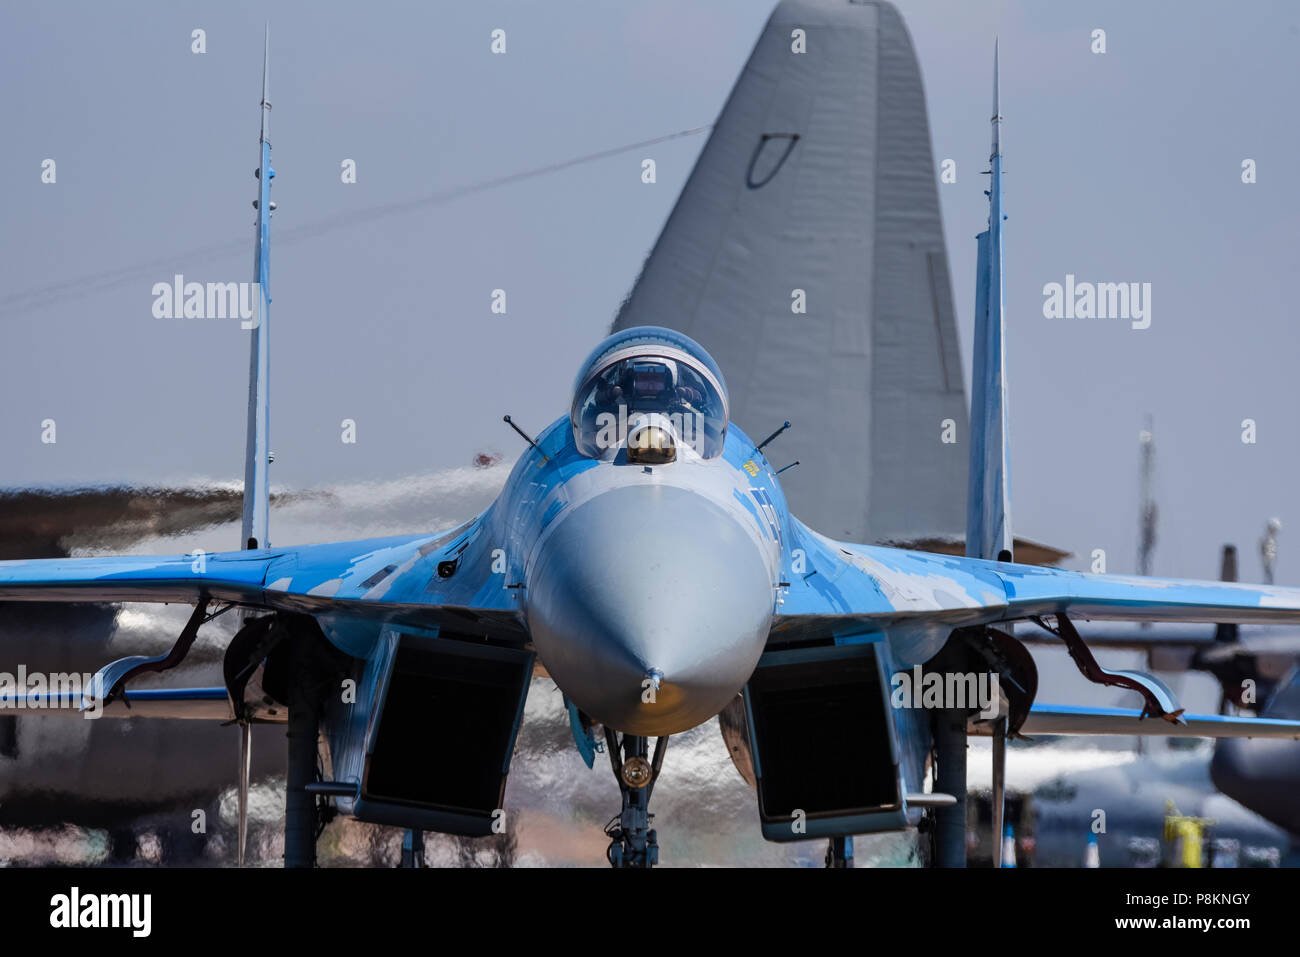 Ukrainian Air Force Sukhoi Su-27 Flanker fighter jet plane - Russian built -  at Royal International Air Tattoo, RIAT 2018, RAF Fairford. - Stock Image